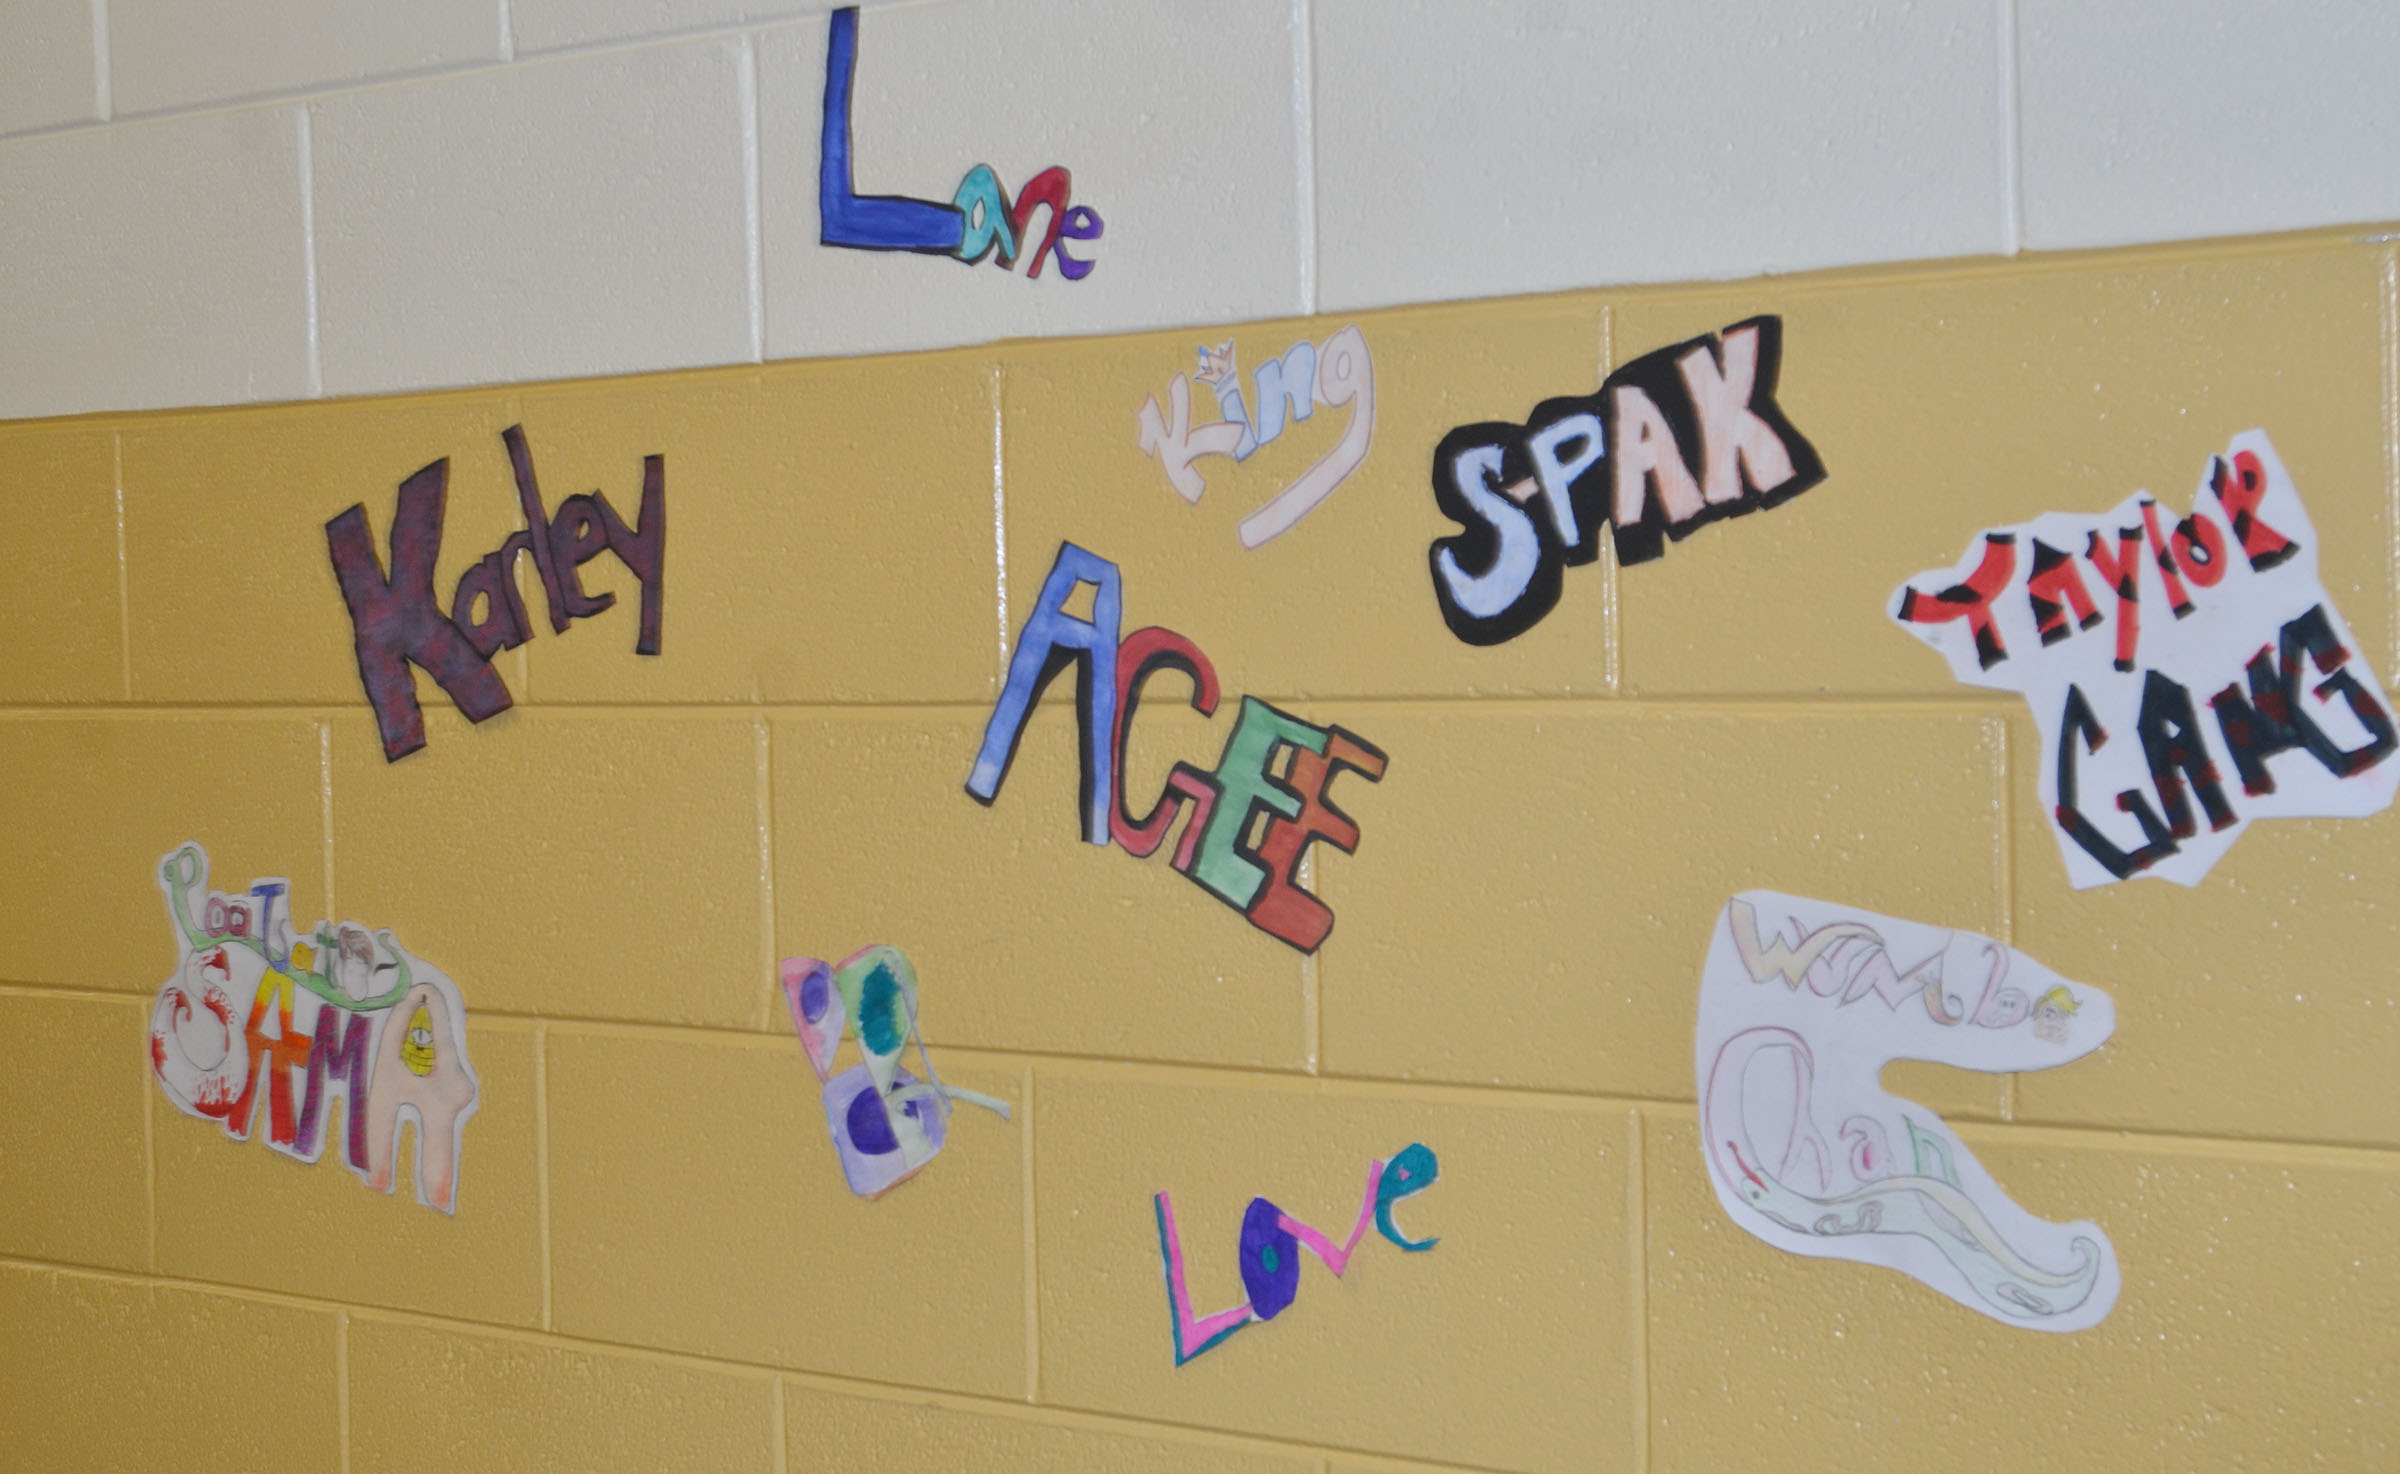 CMS art students made these graffiti tags.